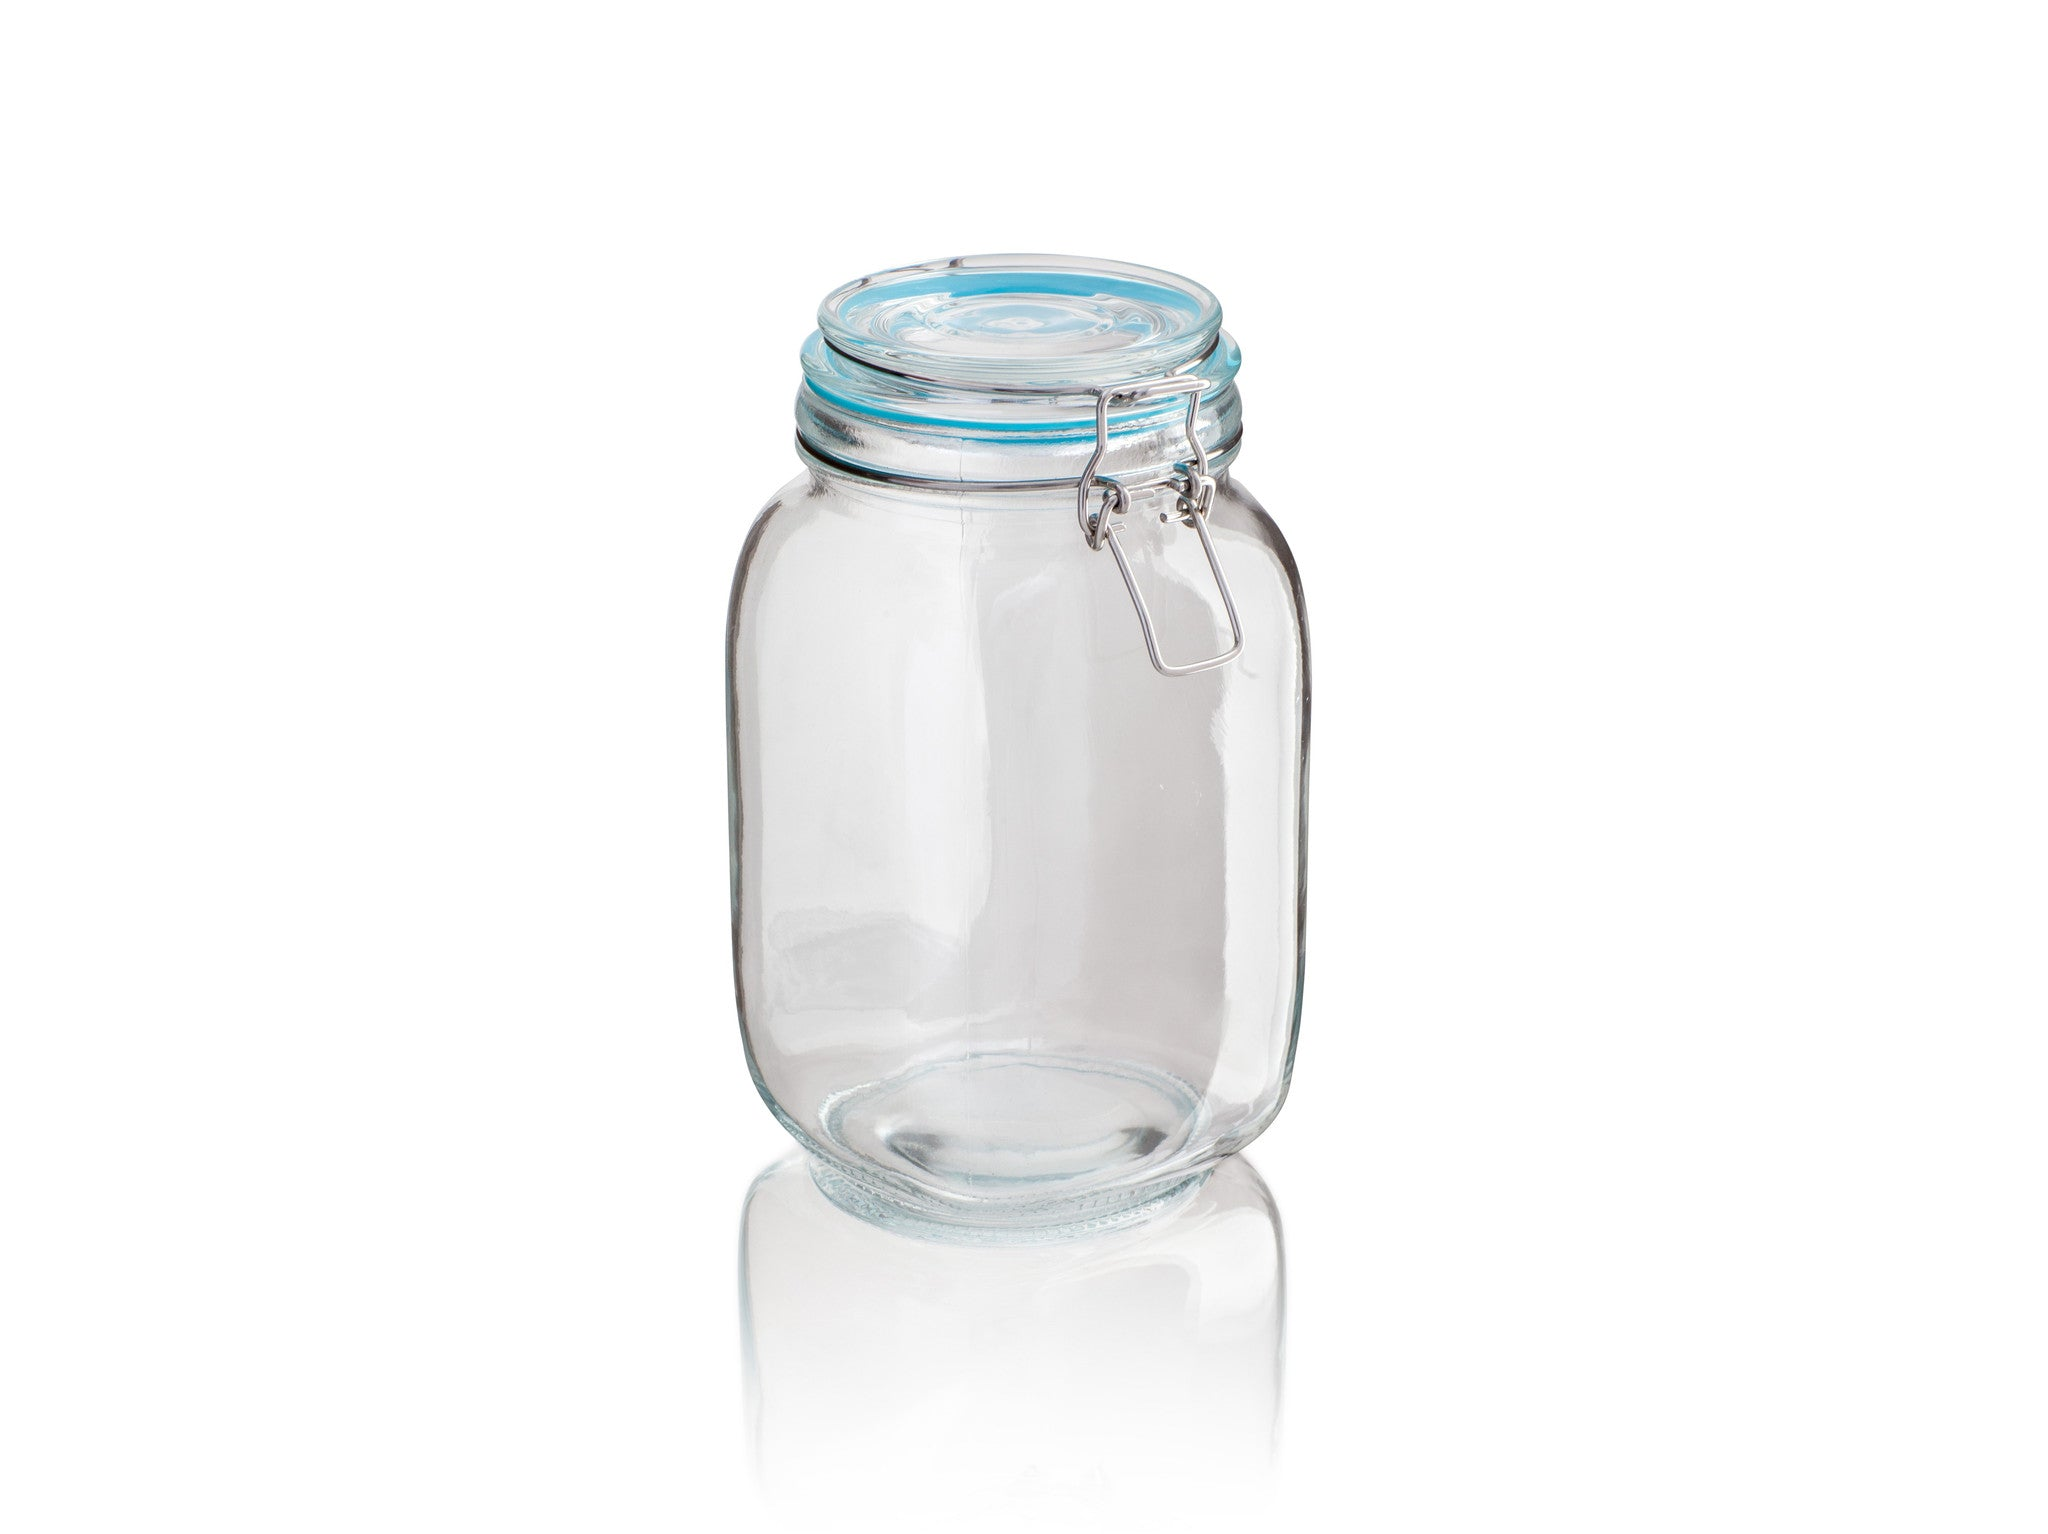 Sabichi Glass Clip Jar - Homely Nigeria - 3